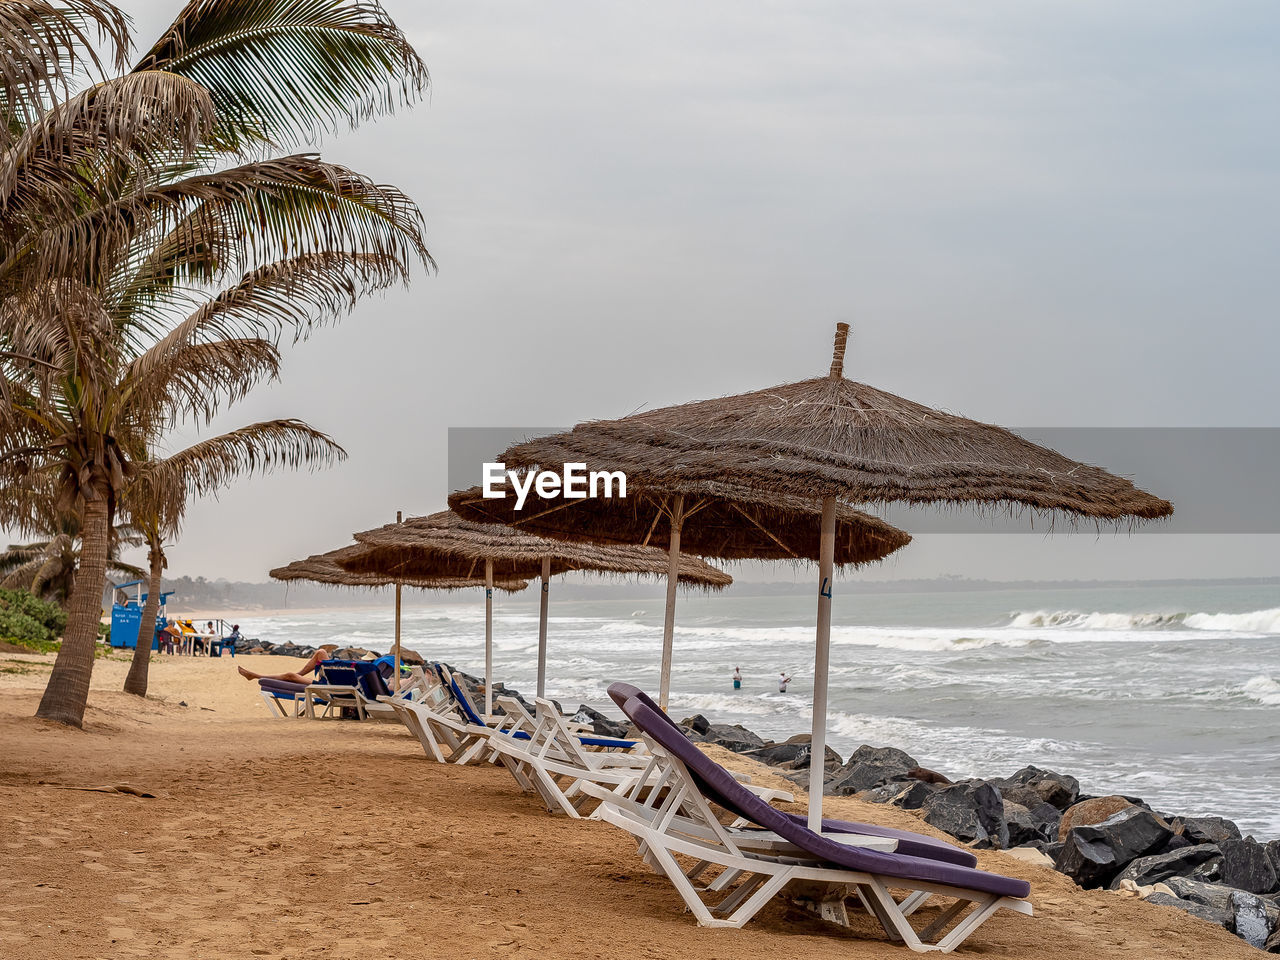 water, sea, beach, land, sky, thatched roof, chair, nature, sand, parasol, beauty in nature, palm tree, tropical climate, lounge chair, day, roof, tranquility, umbrella, tree, horizon over water, outdoors, no people